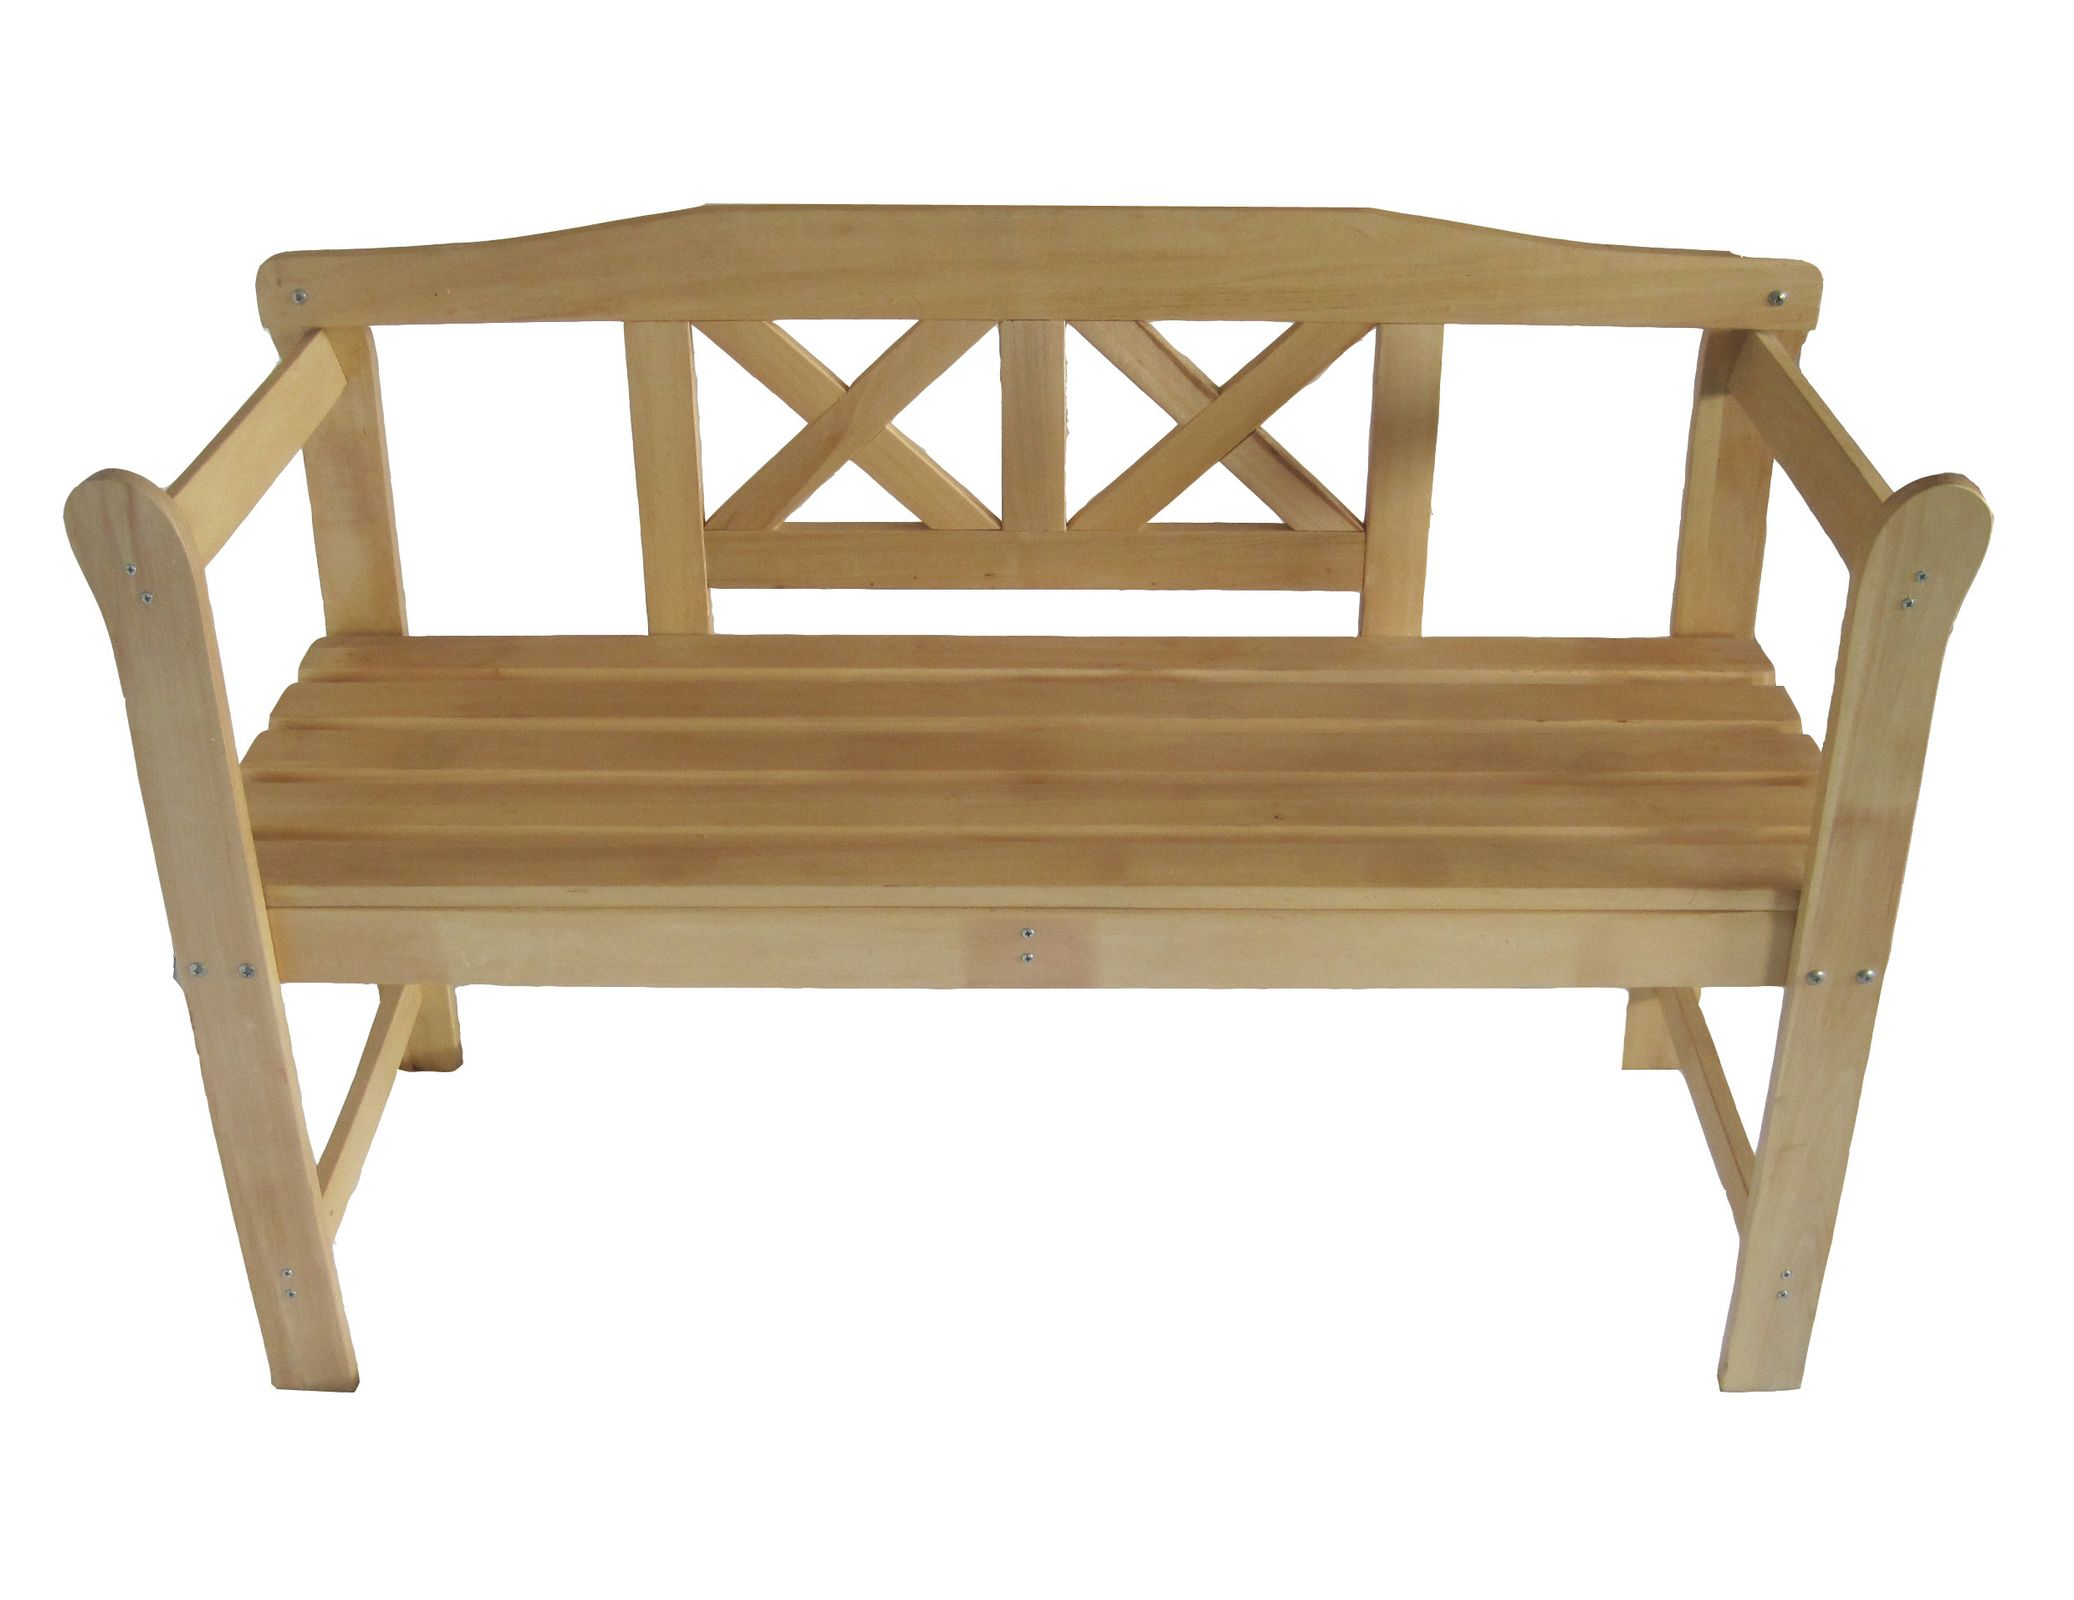 Outdoor home wooden 2 seat seater garden bench furniture for Outdoor furniture benches